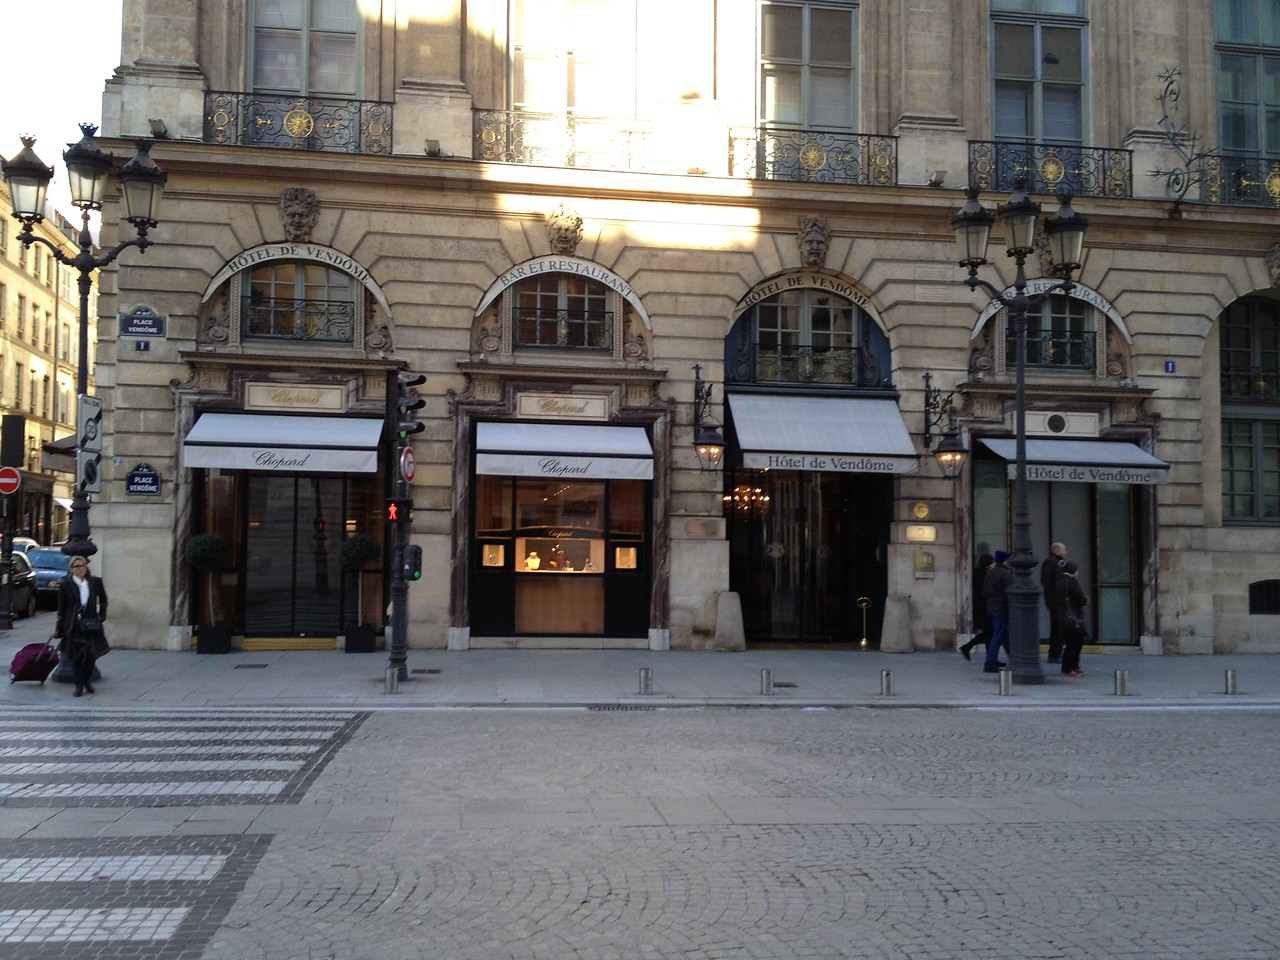 The square is populated by very high end jewelry stores.